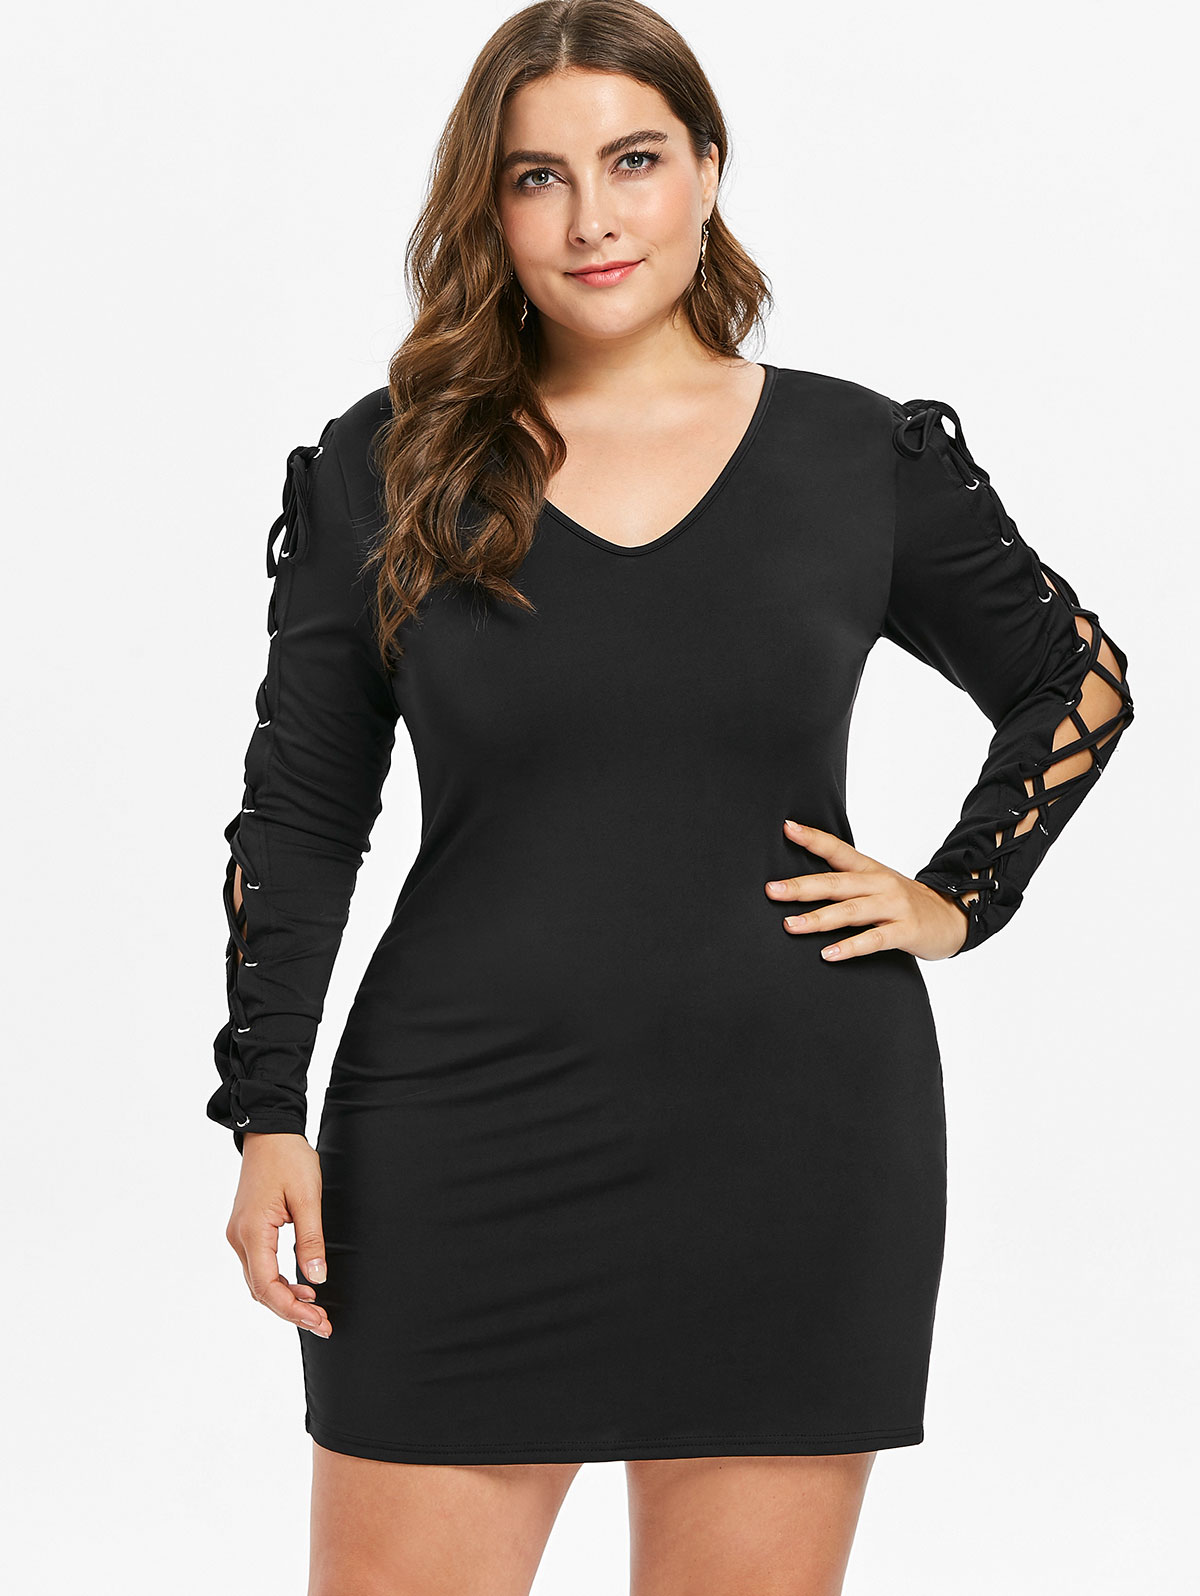 US $12.23 51% OFF|Wipalo Plus Size 5XL 4XL Lace Up Long Sleeve Bodycon  Dress Women Autumn V Neck Casual Mini Dress Party Dresses Vestidos Femme-in  ...